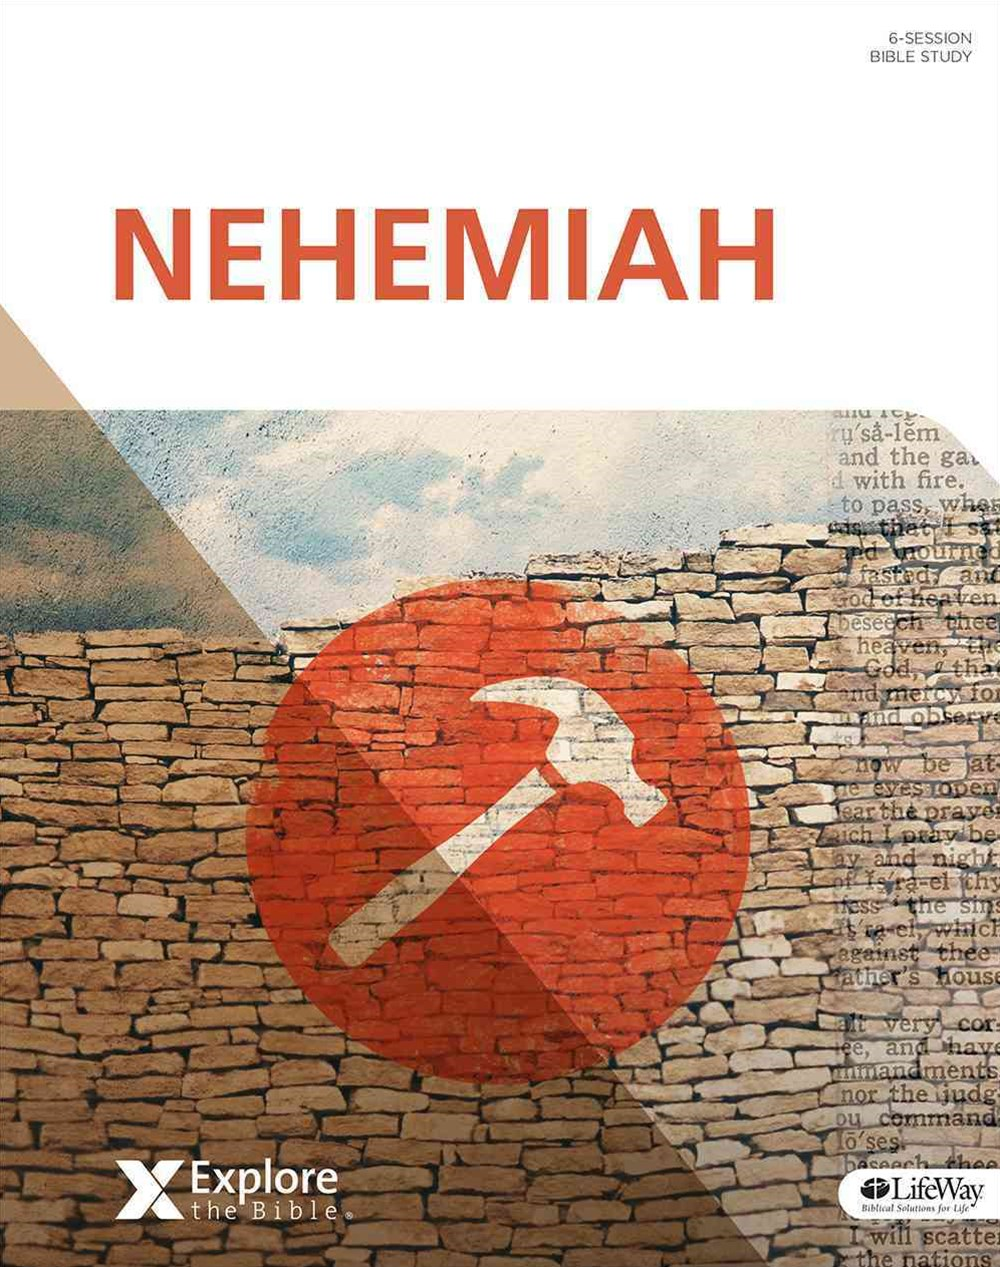 Explore the Bible: Nehemiah - Bible Study Book